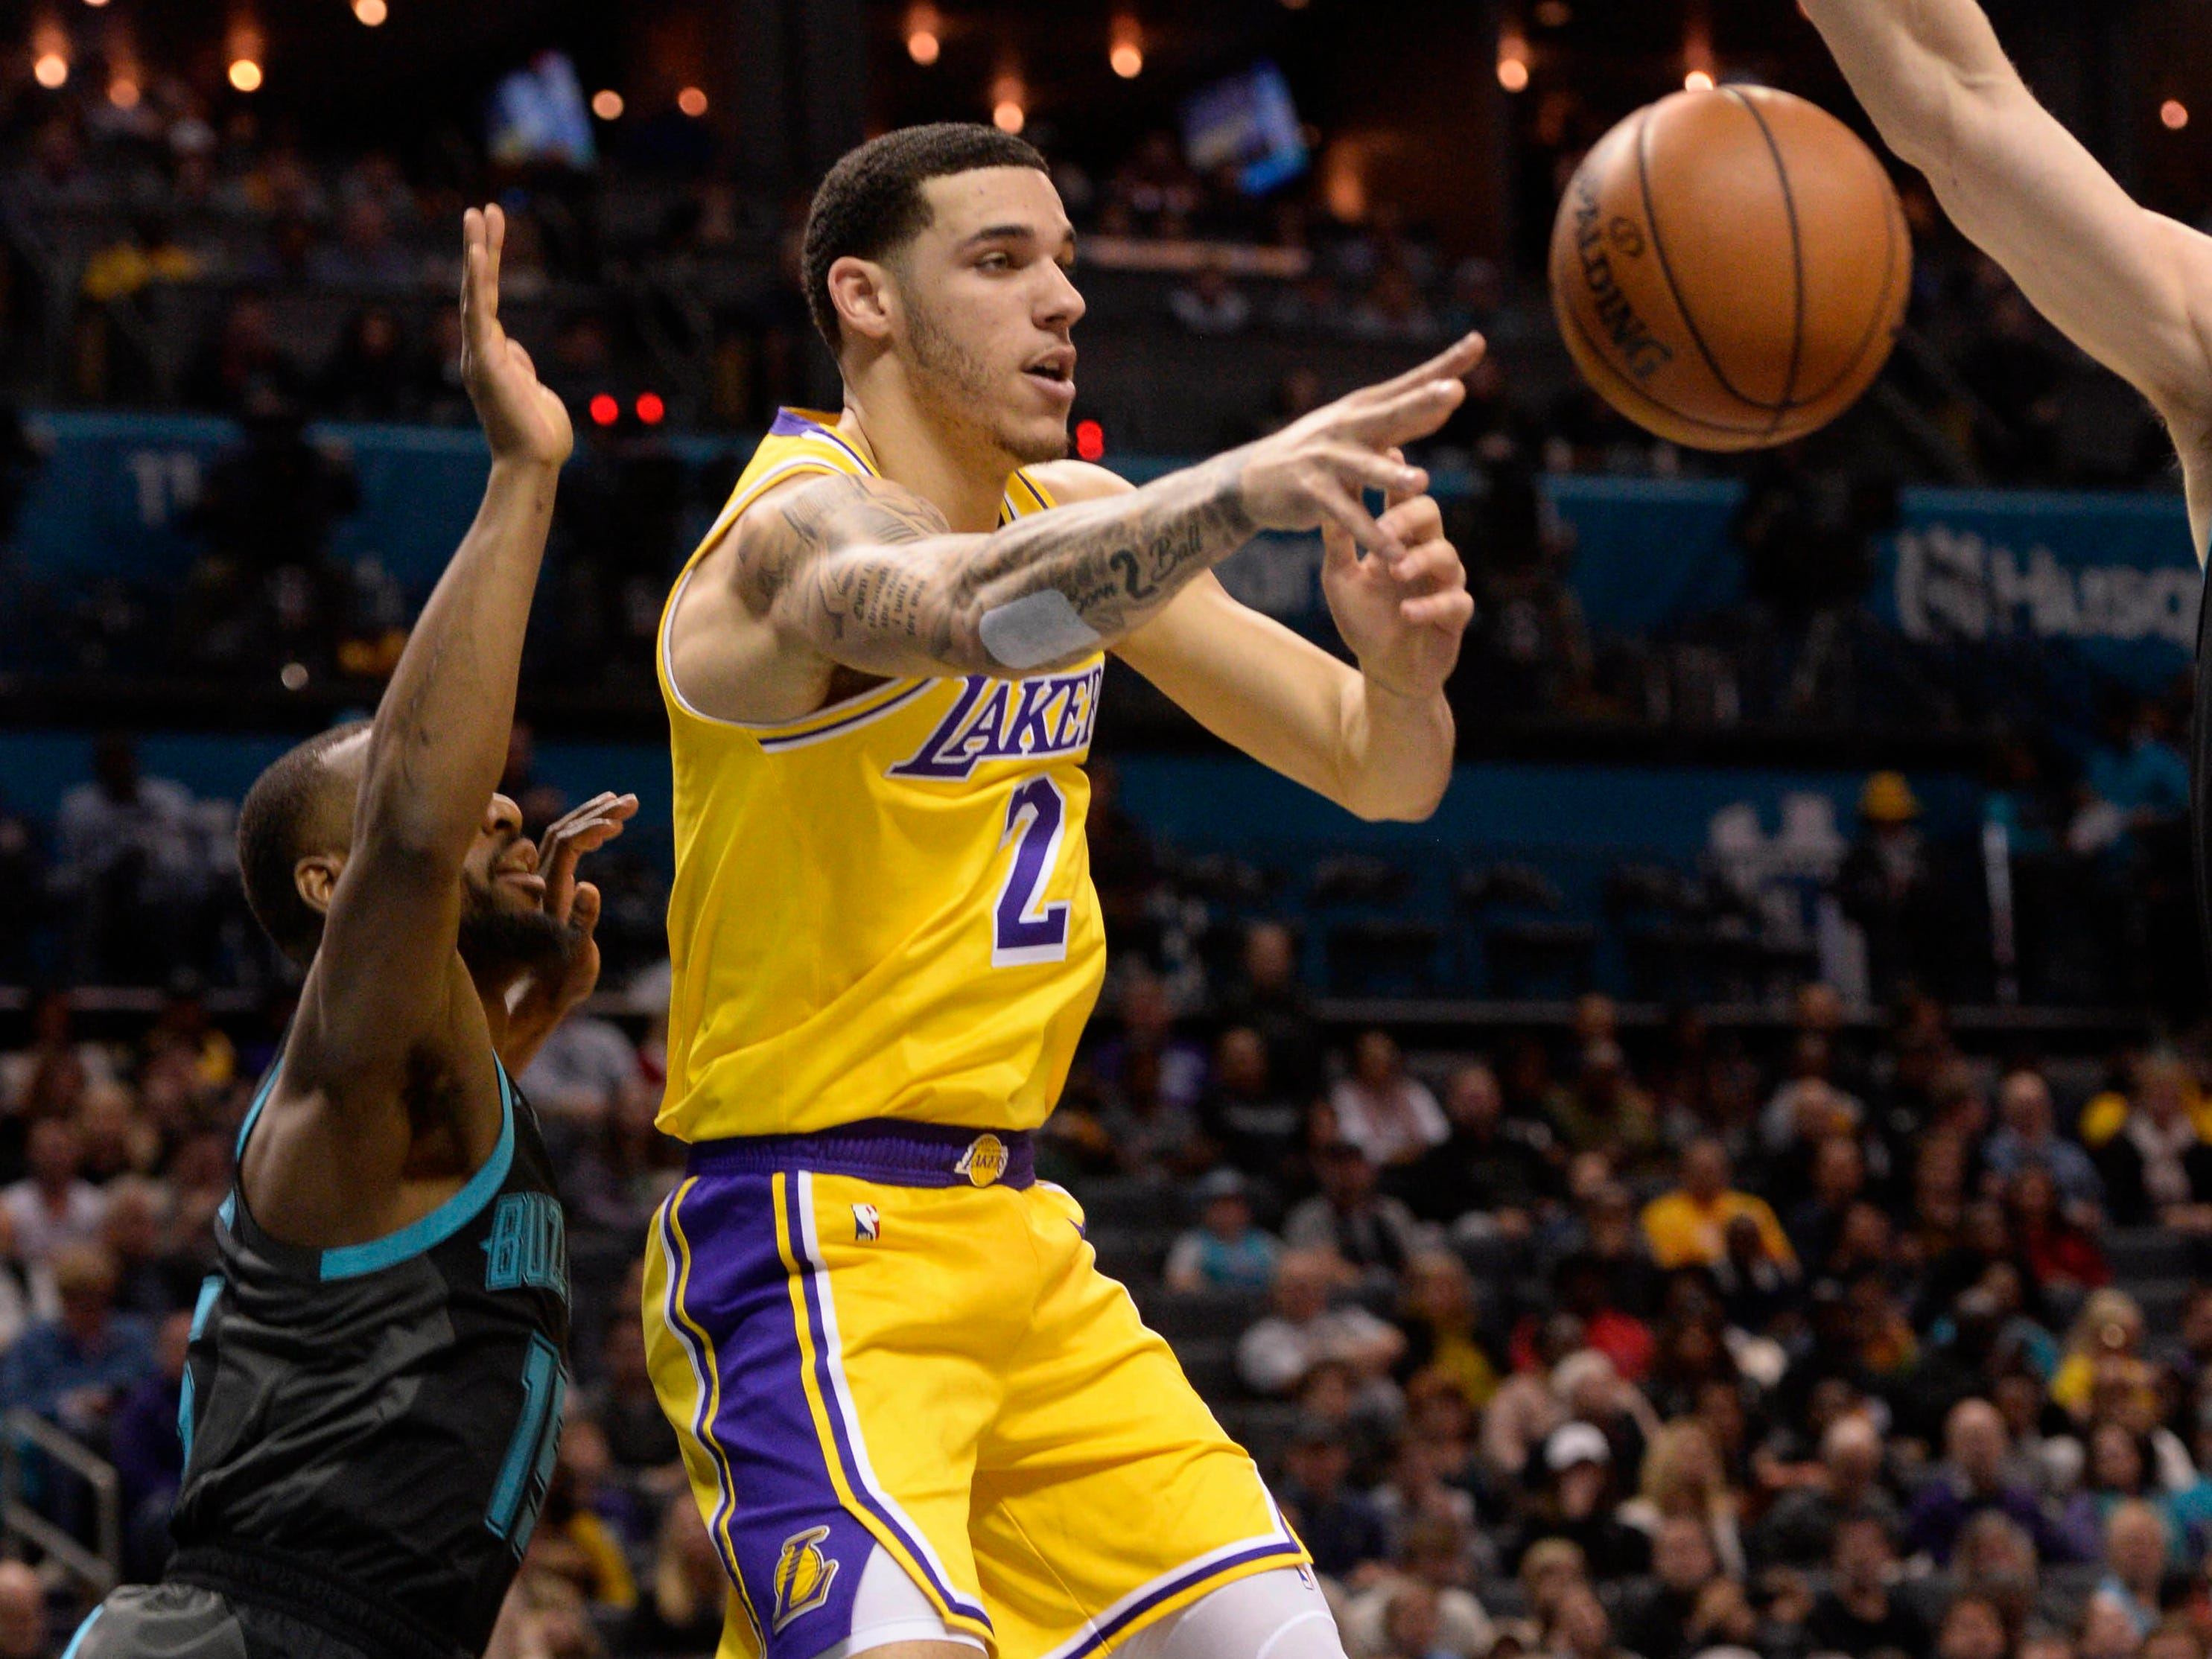 25. Lonzo Ball, Lakers (Dec. 15): 16 points, 10 rebounds, 10 assists in 128-100 win over Hornets.